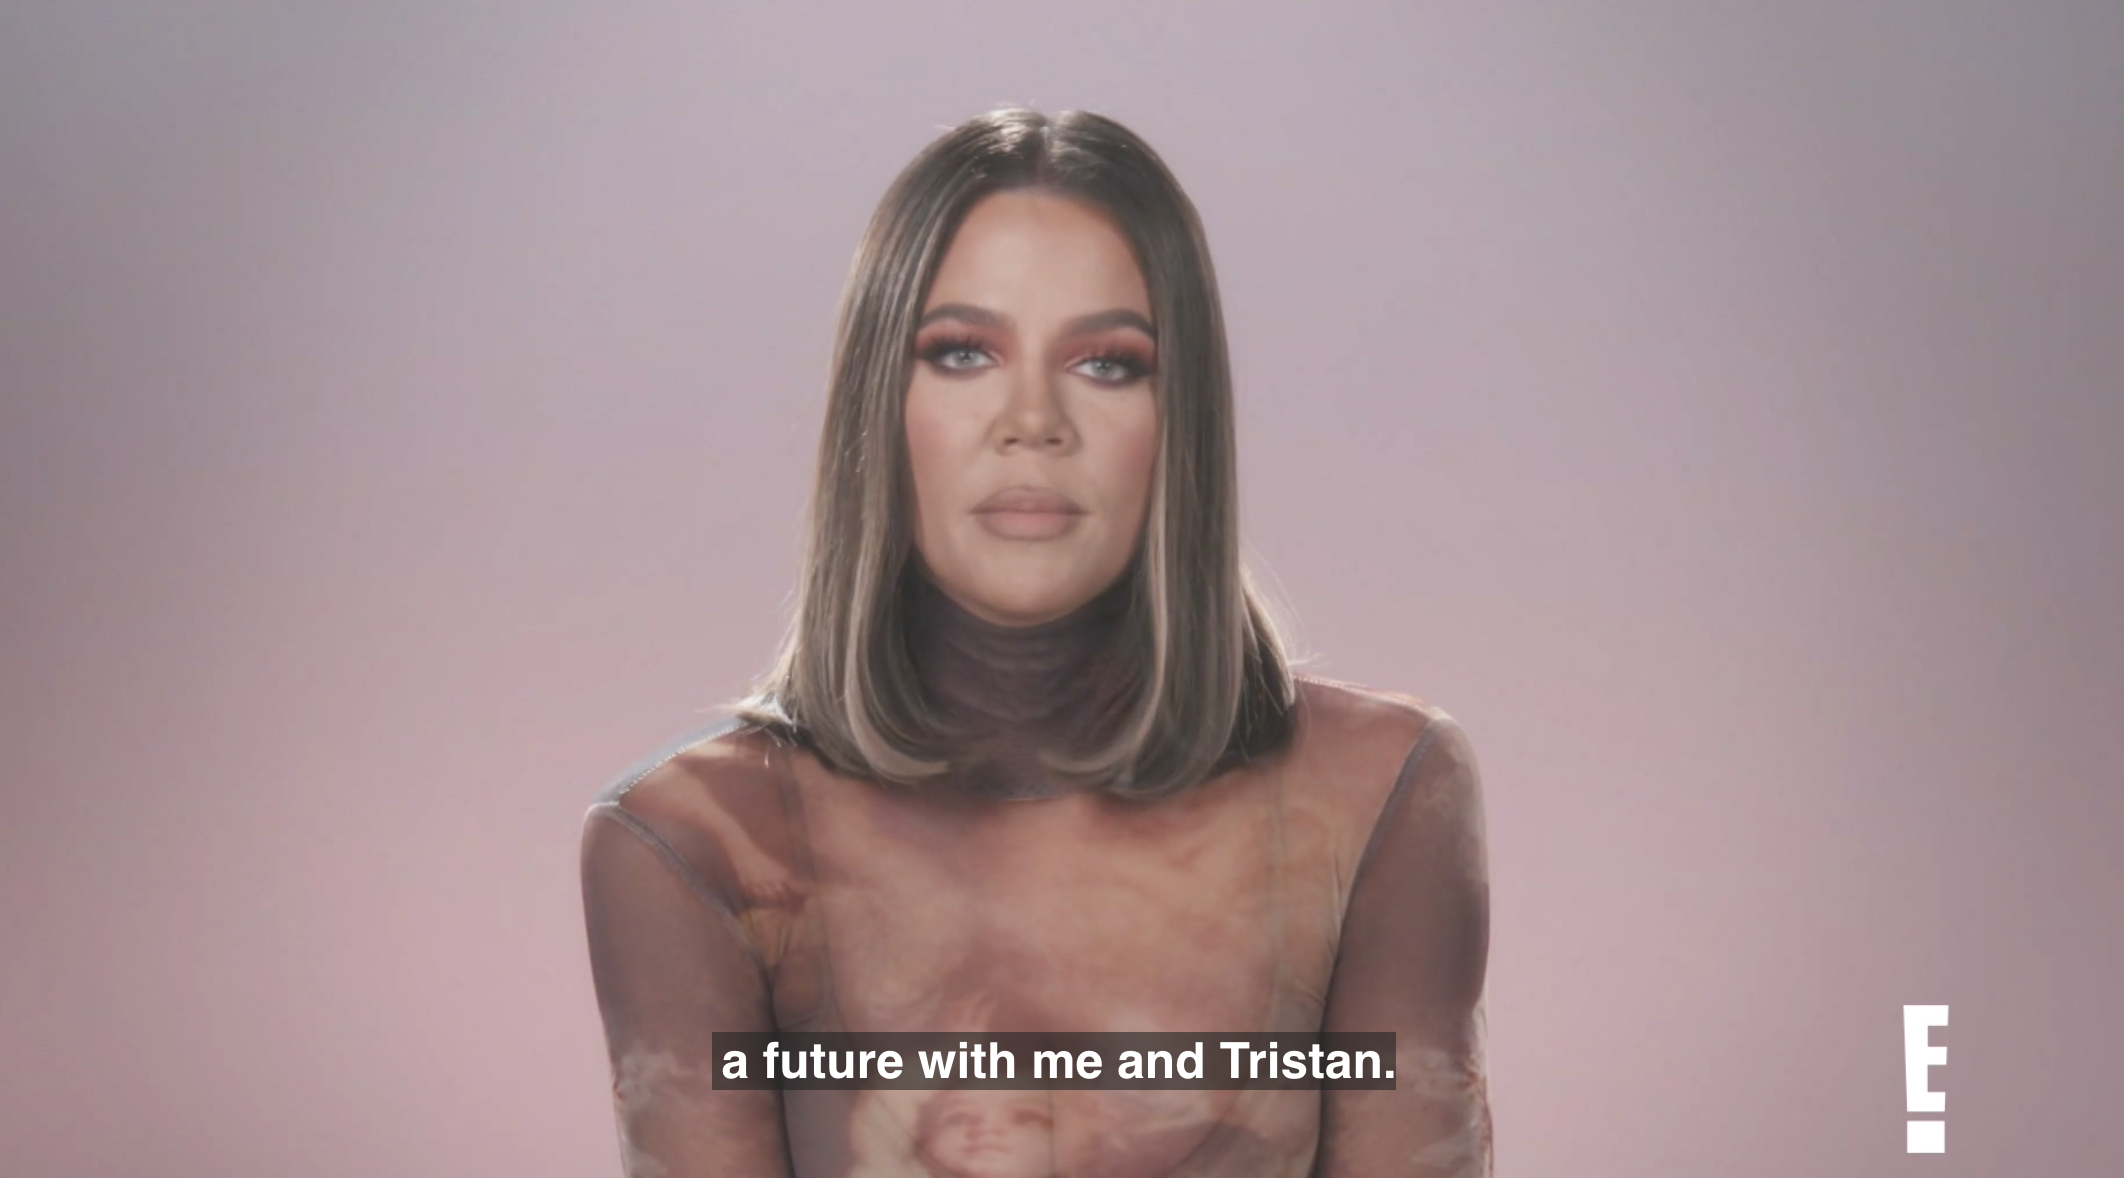 Khloe saying she wants to be with Tristan